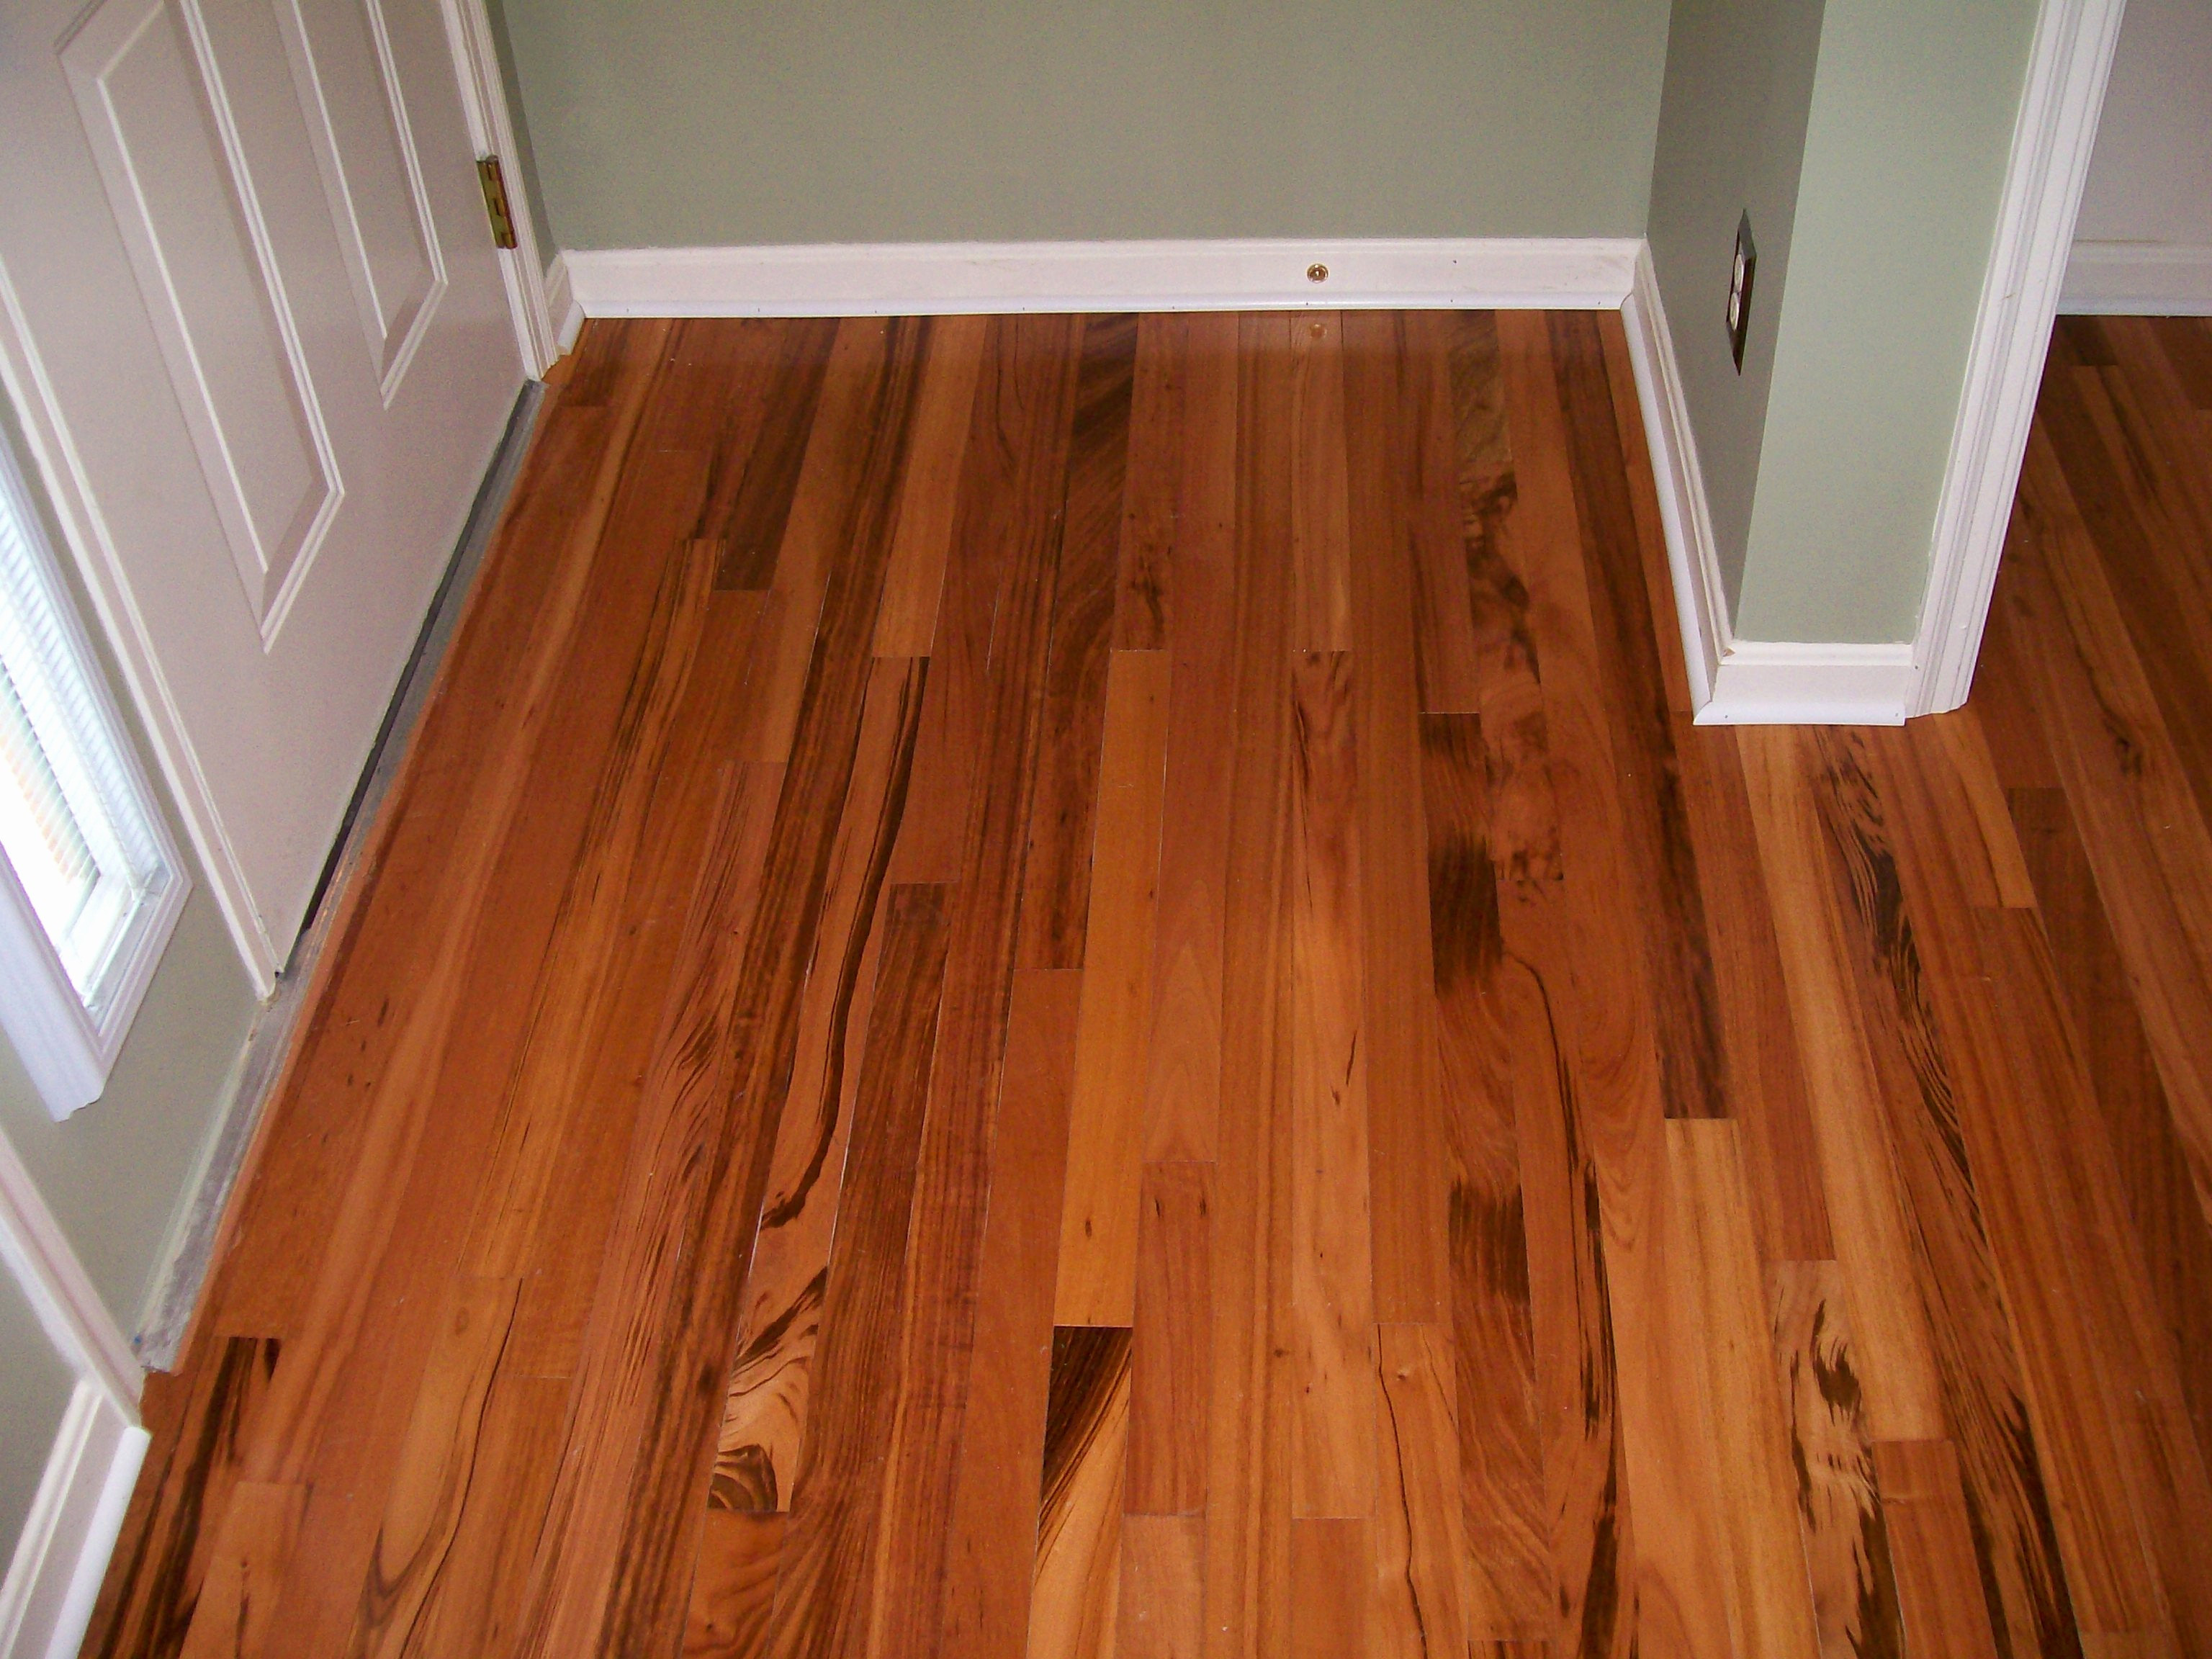 sanding and restaining hardwood floors cost of 17 new cost of hardwood floor installation pics dizpos com pertaining to cost of hardwood floor installation new 50 fresh estimated cost installing hardwood floors 50 photos of